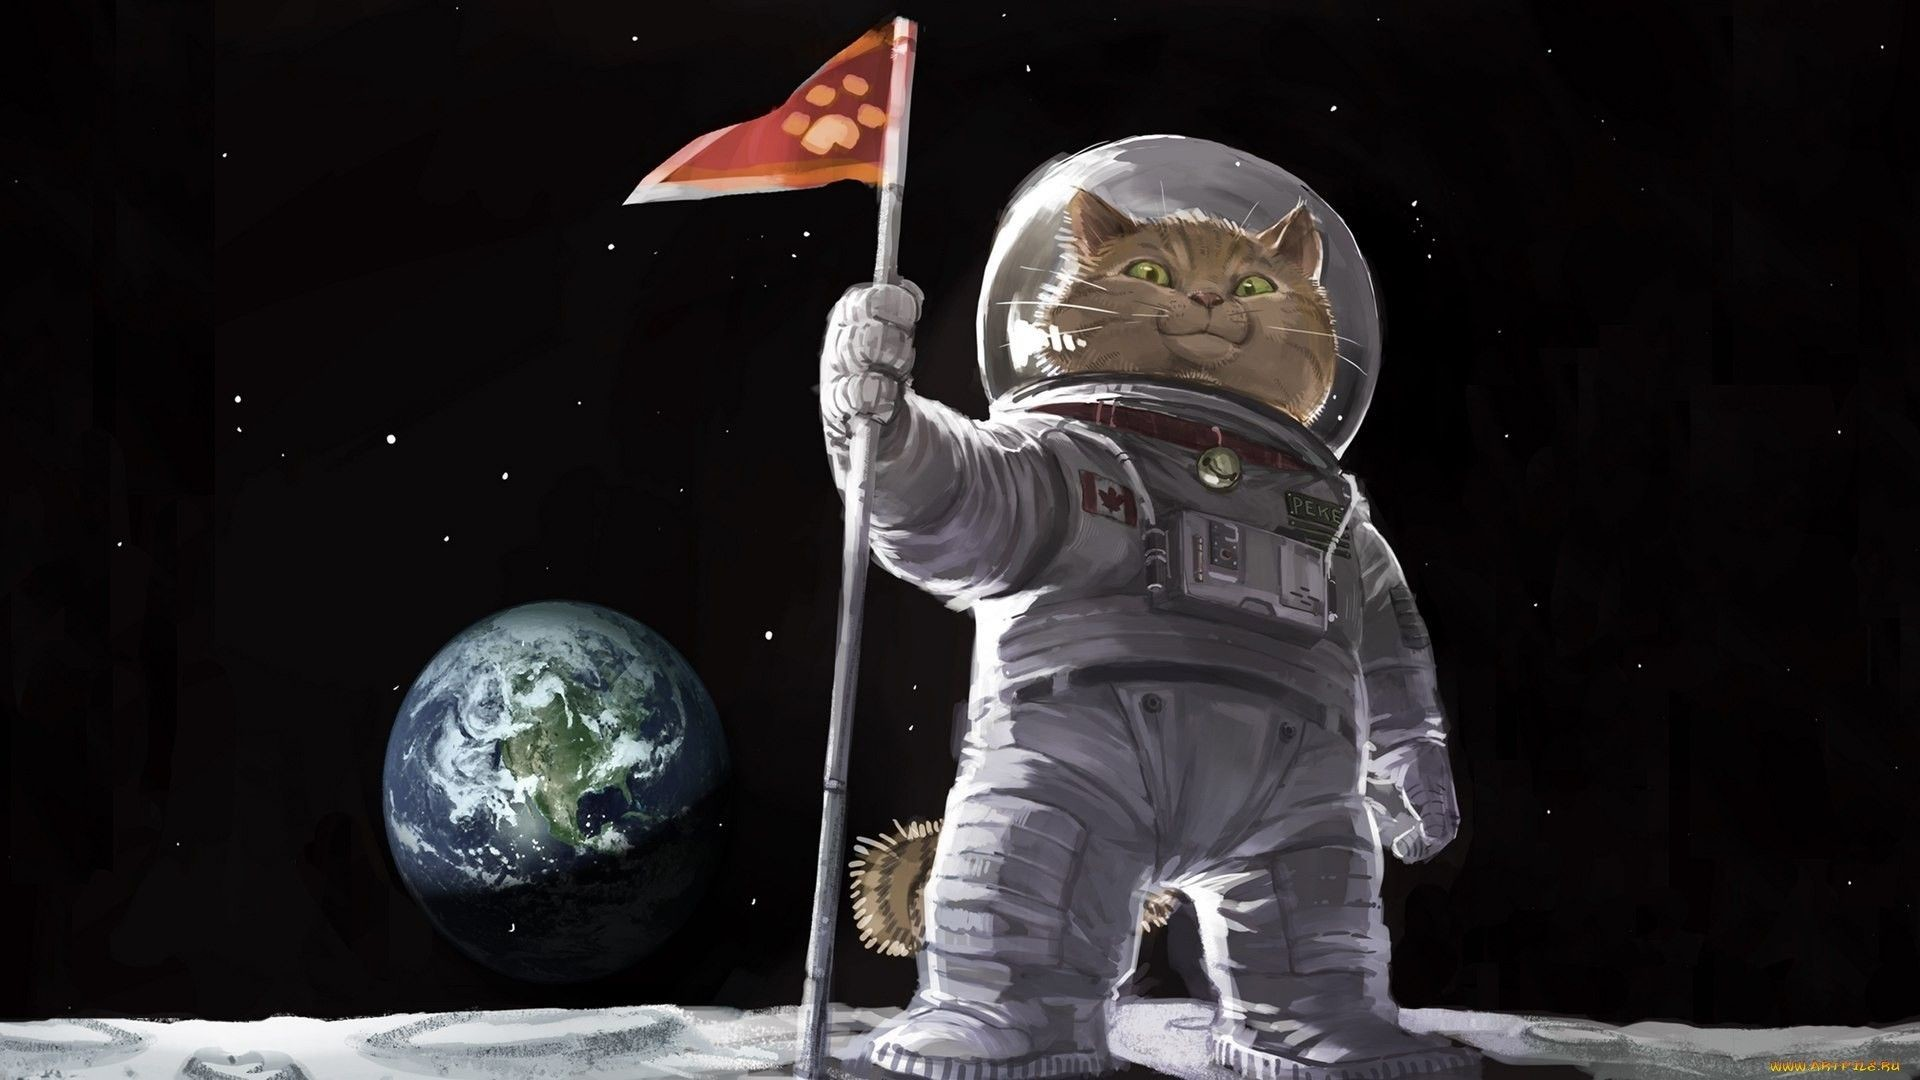 Res: 1920x1080, Cats, conquered the Earth - now onwards